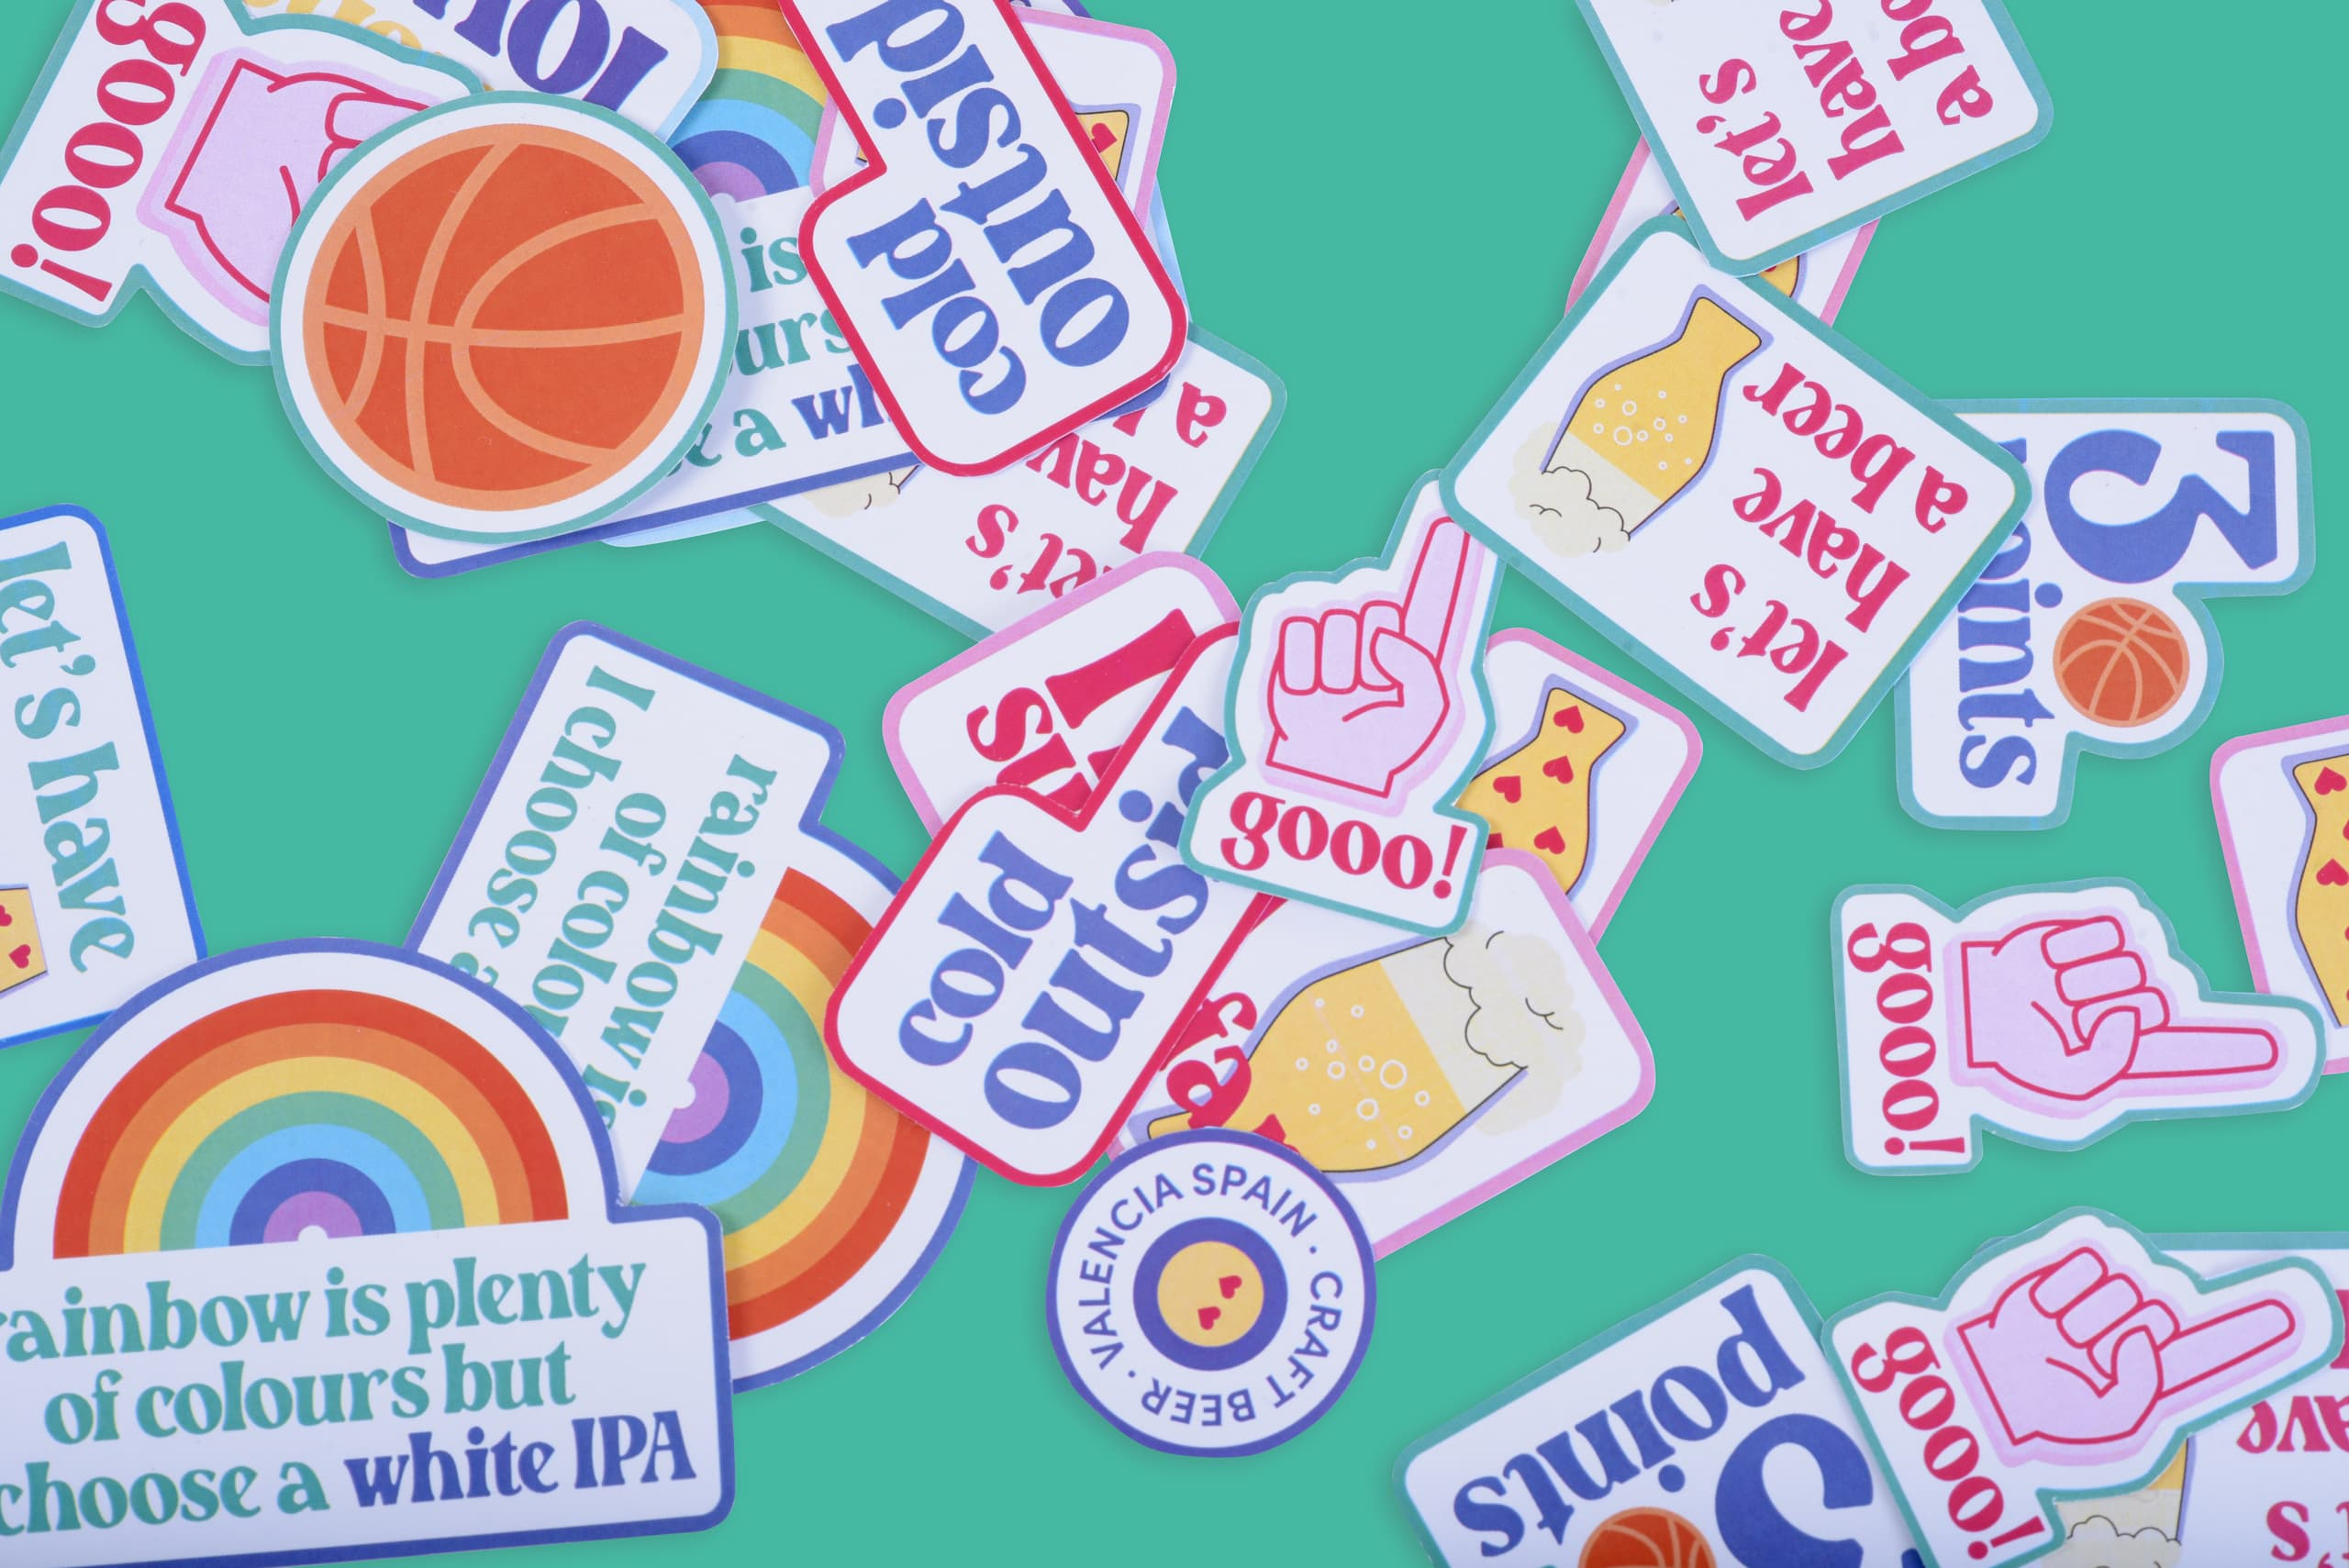 Stickers One Beer One Year